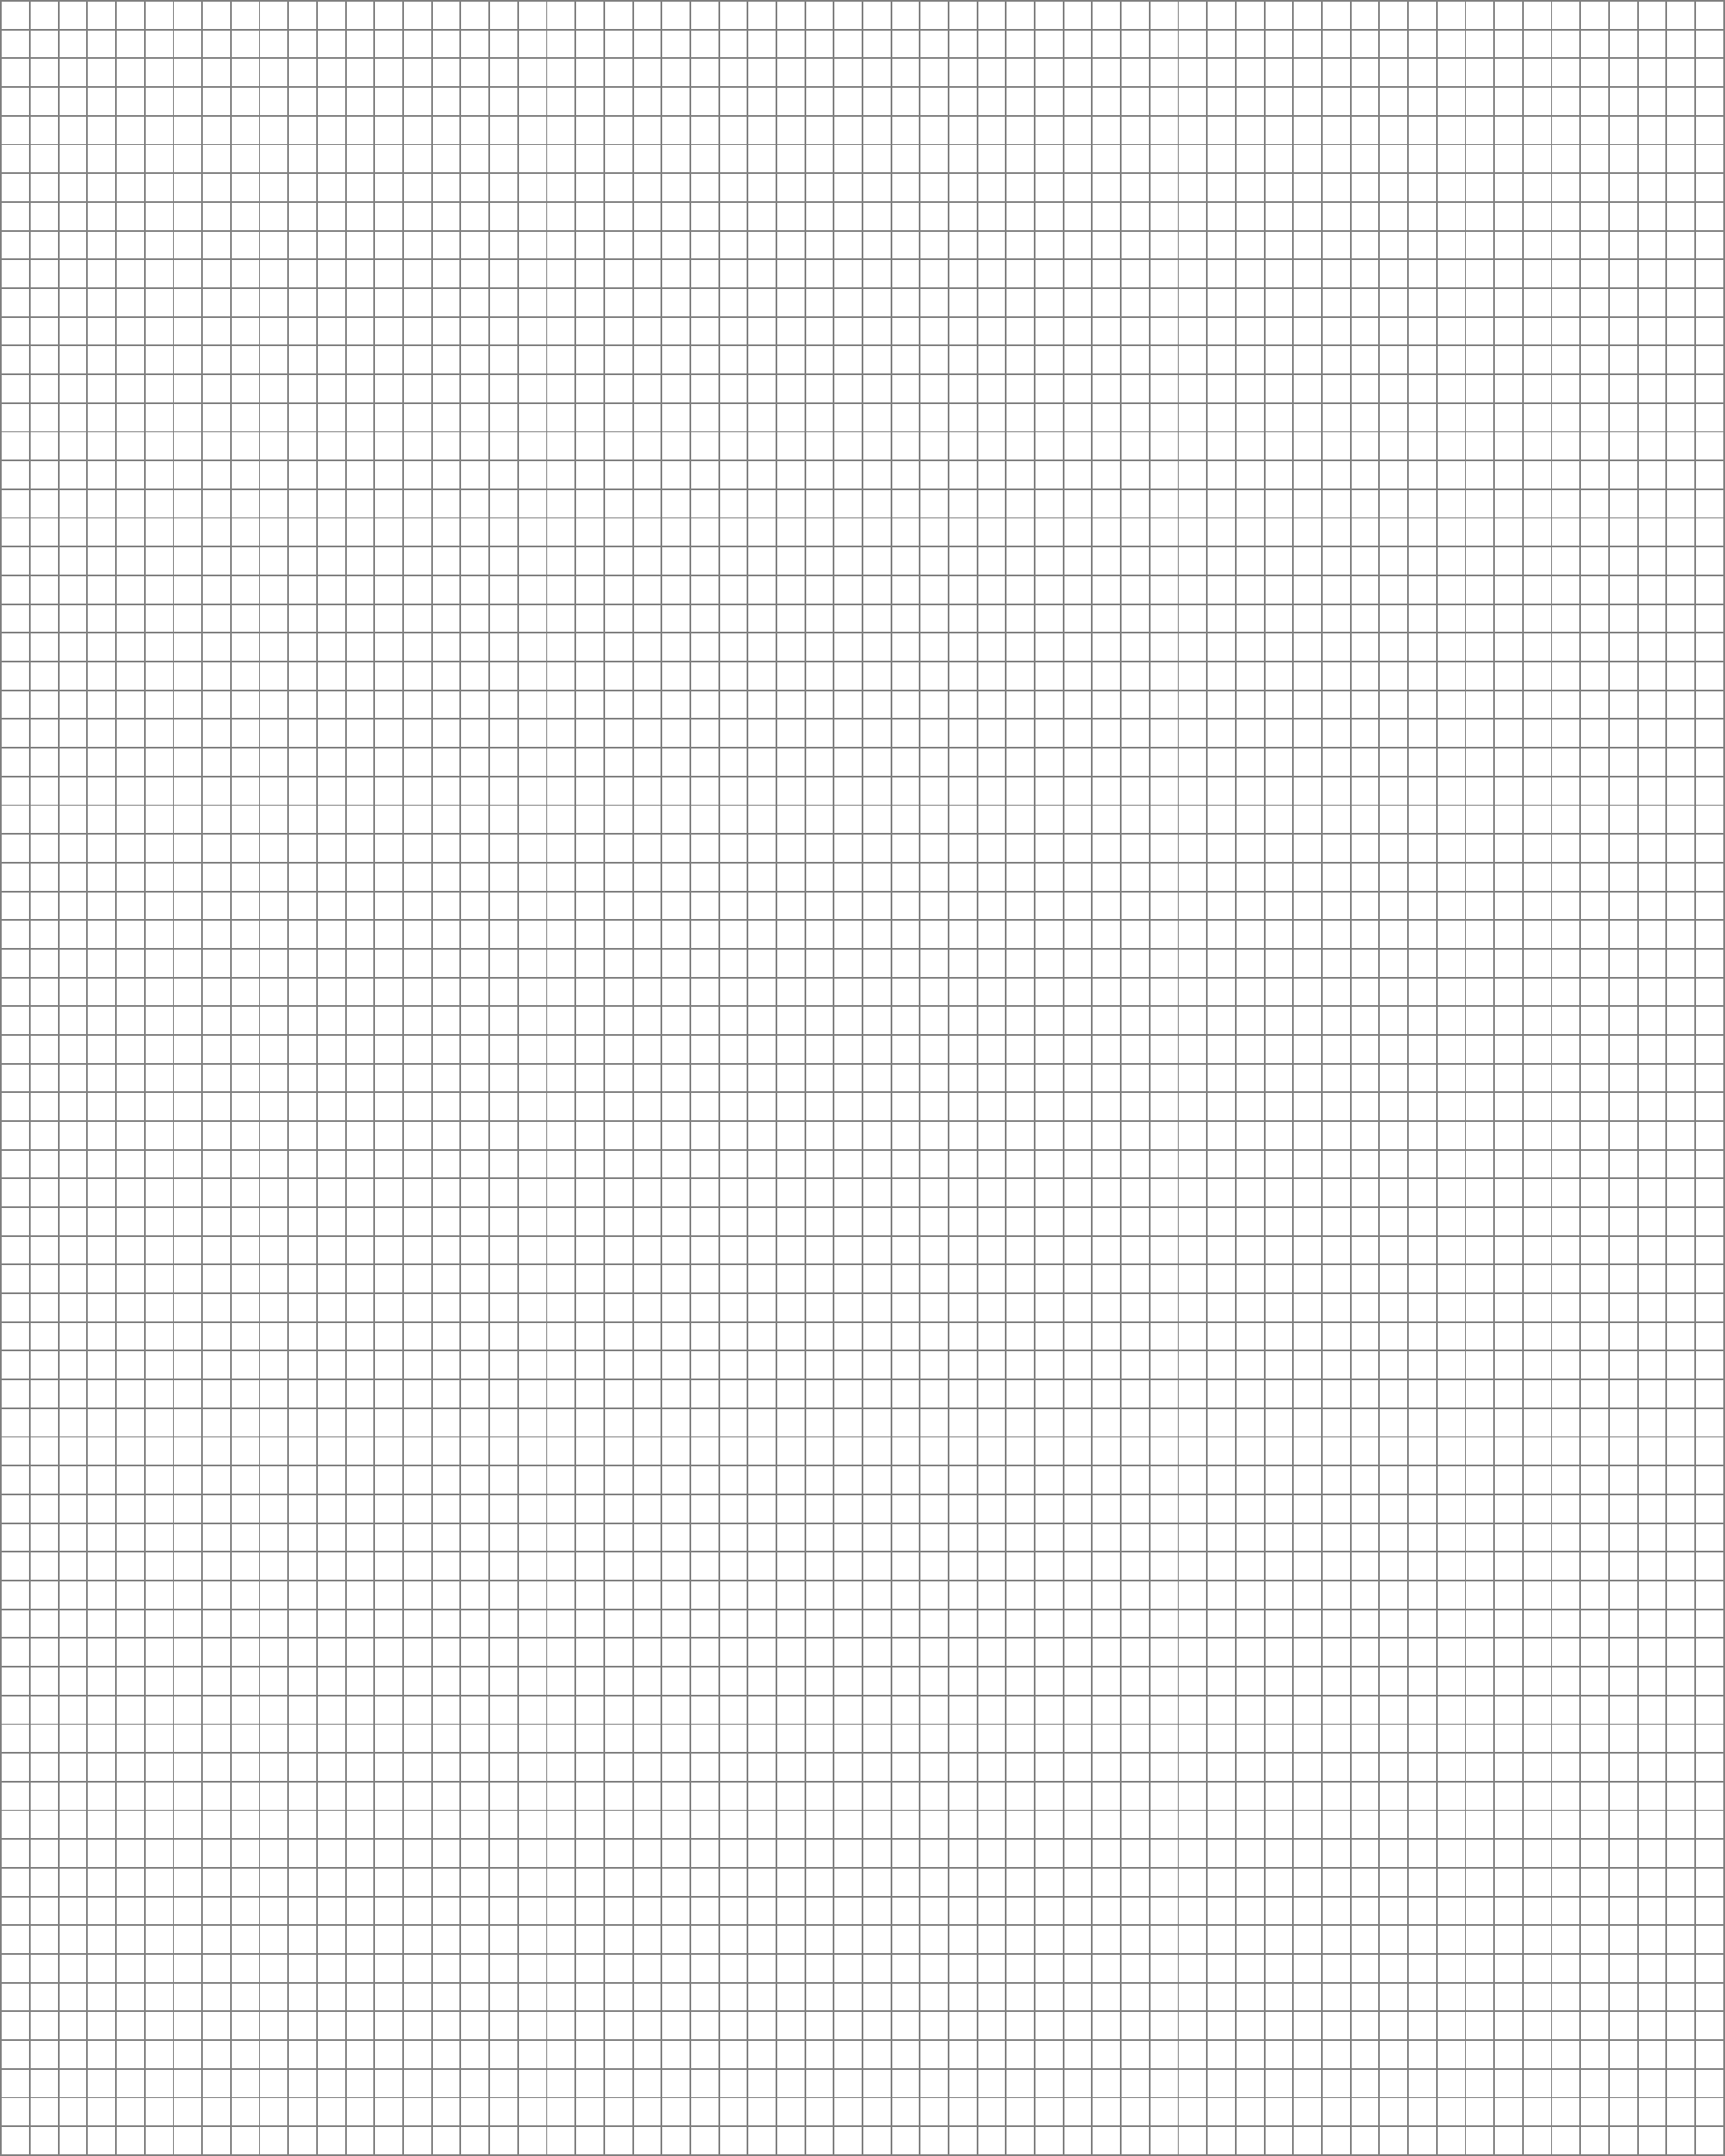 3 mm a4 size blank graph paper template free download